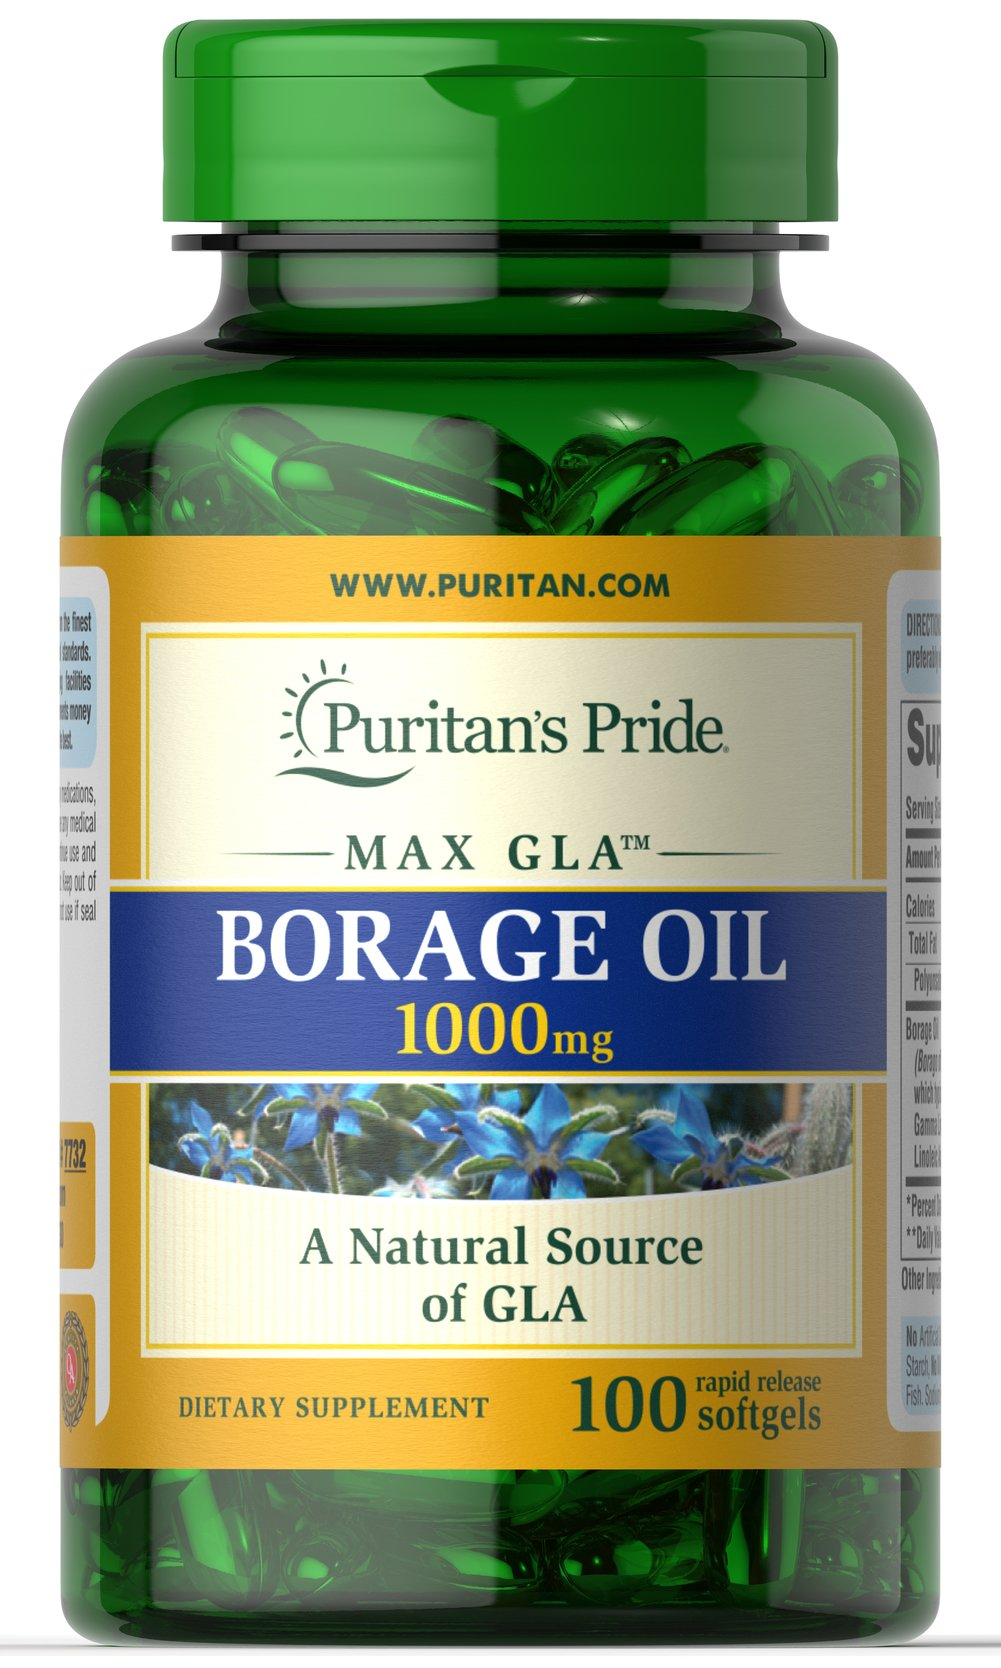 Borage Oil 1000 mg <p>Borage Oil is an excellent plant source of the Omega-6 fatty acid Gamma Linolenic Acid (GLA). Perfect for people on low-fat diets, Borage Oil assists in the production of prostaglandins and supports cellular and metabolic health.** Research indicates that GLA is also beneficial for women's health.** Our 1000 mg softgels typically contain 190 mg of GLA and 350 mg of Linoleic Acid.</p> 100 Softgels 1000 mg $31.99